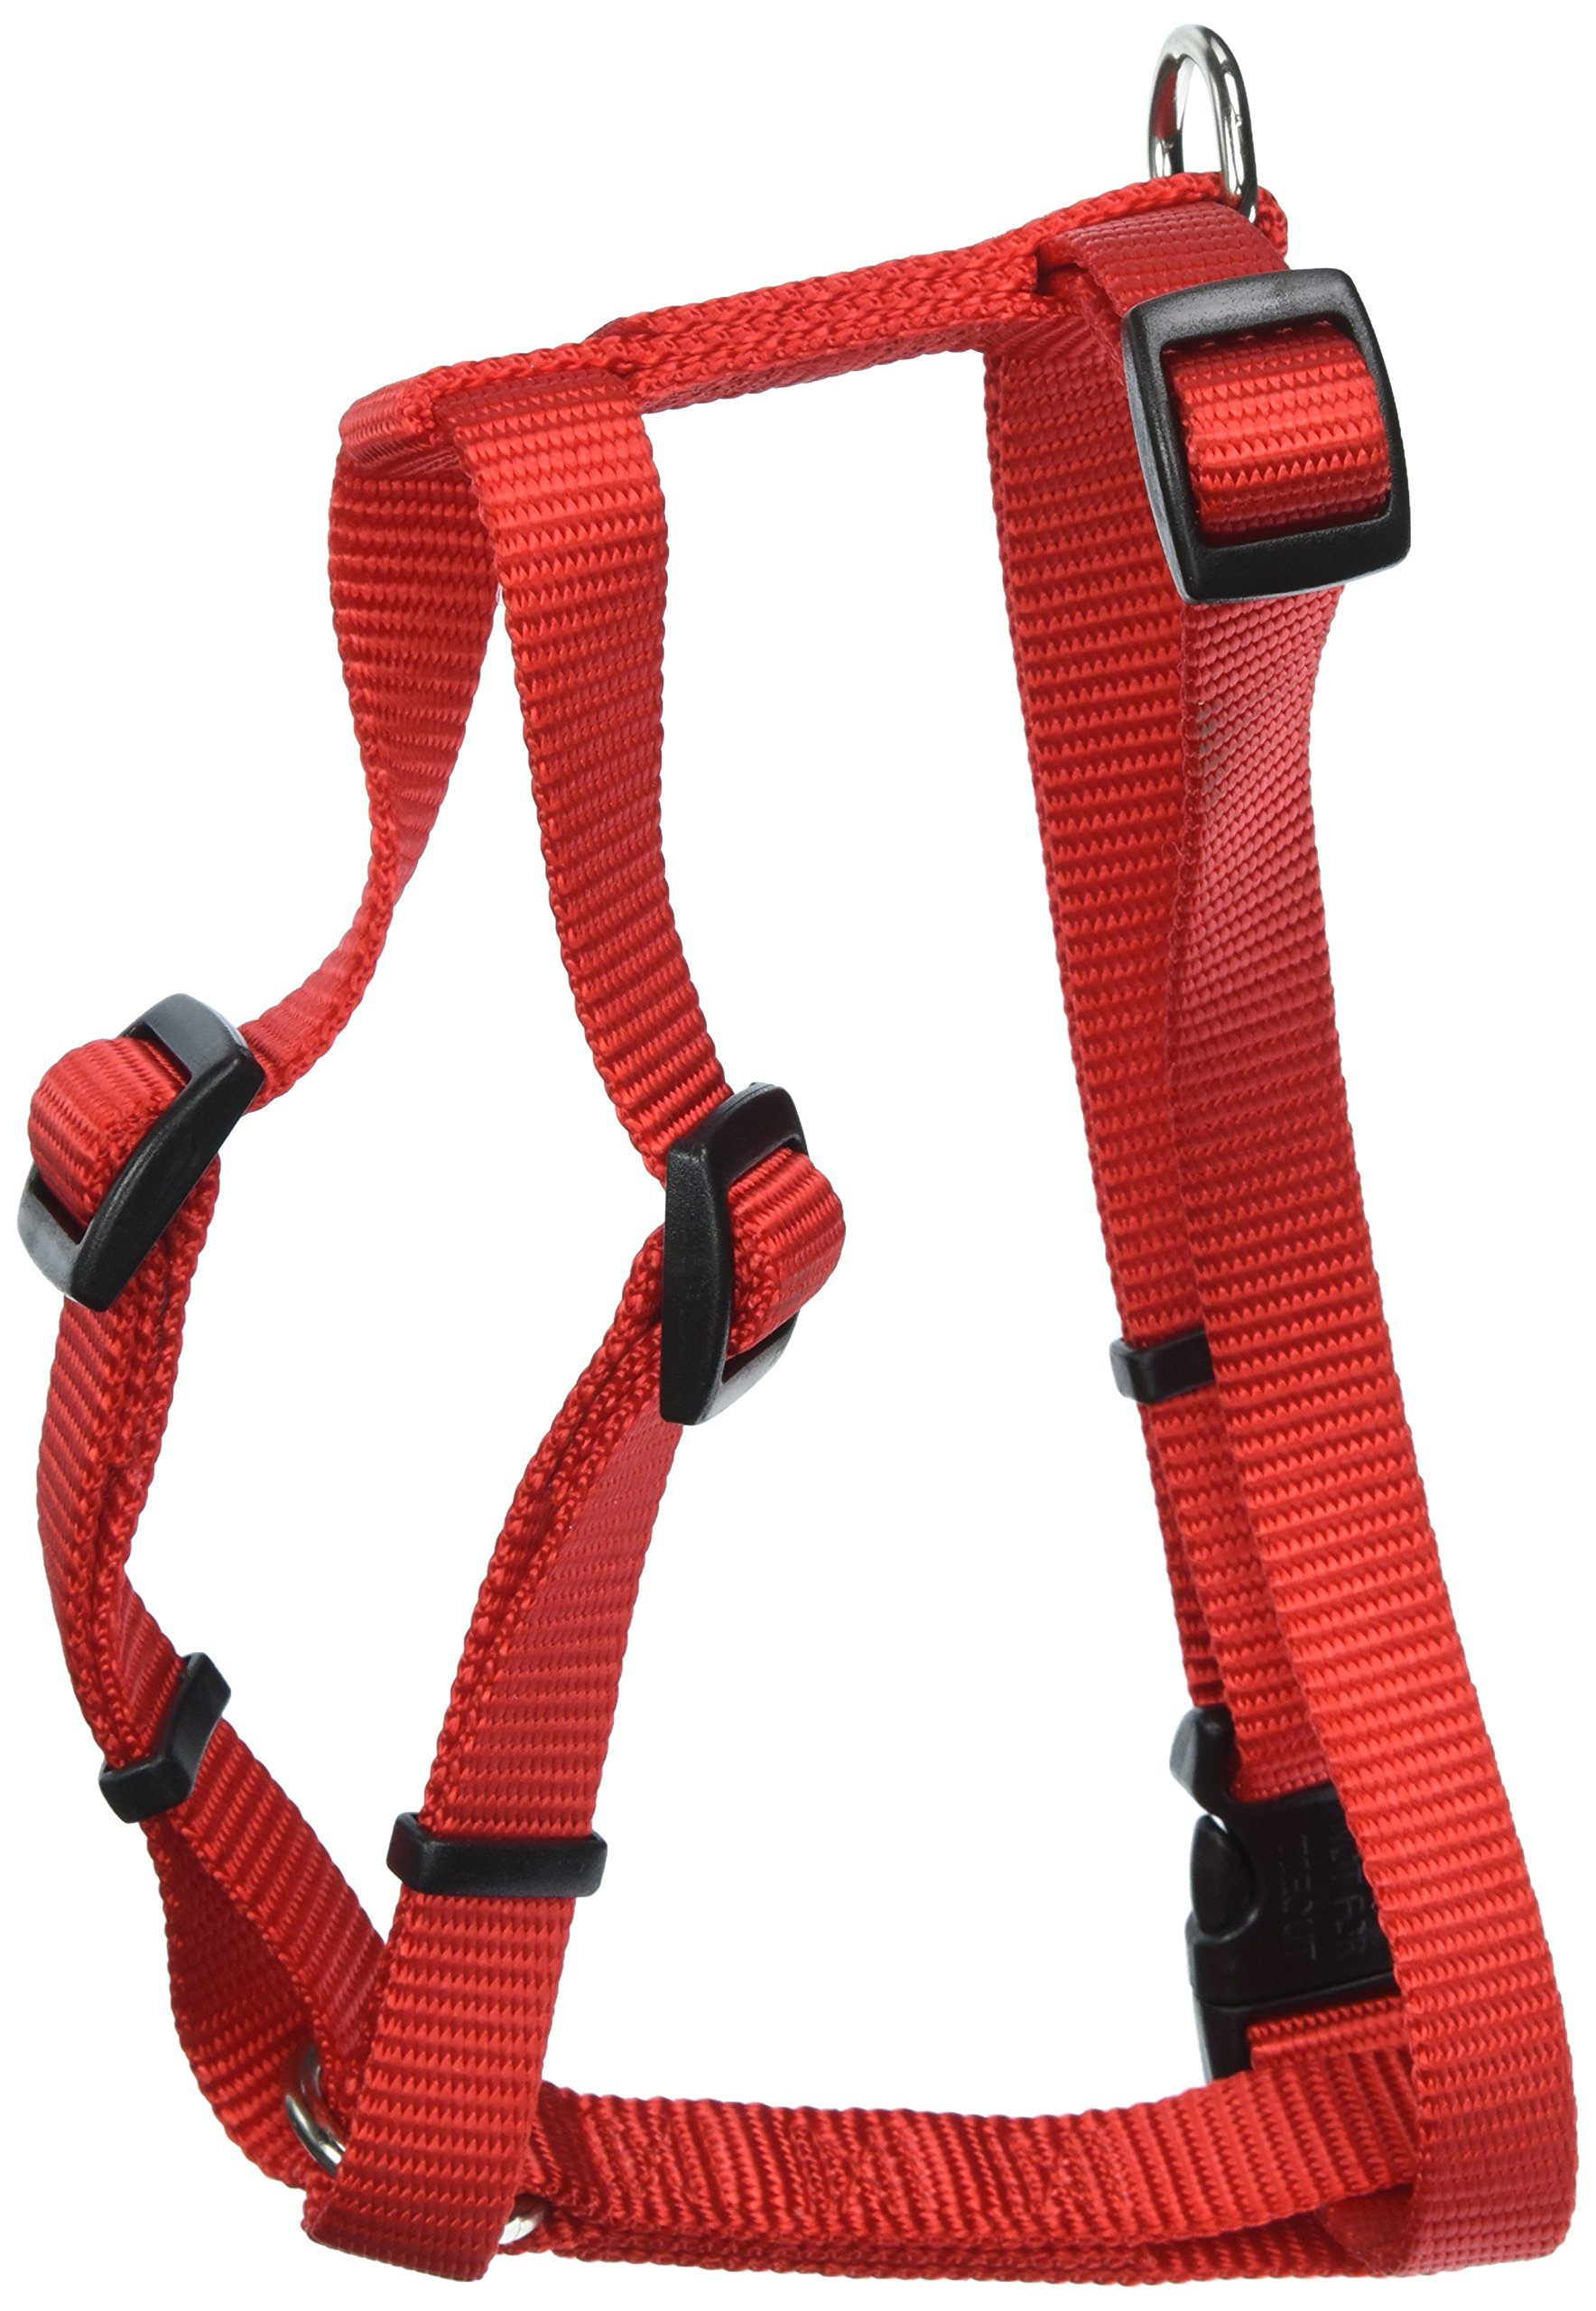 Coastal Pet Products DCP6443RED Nylon Standard Adjustable Dog Harness, Small, Red